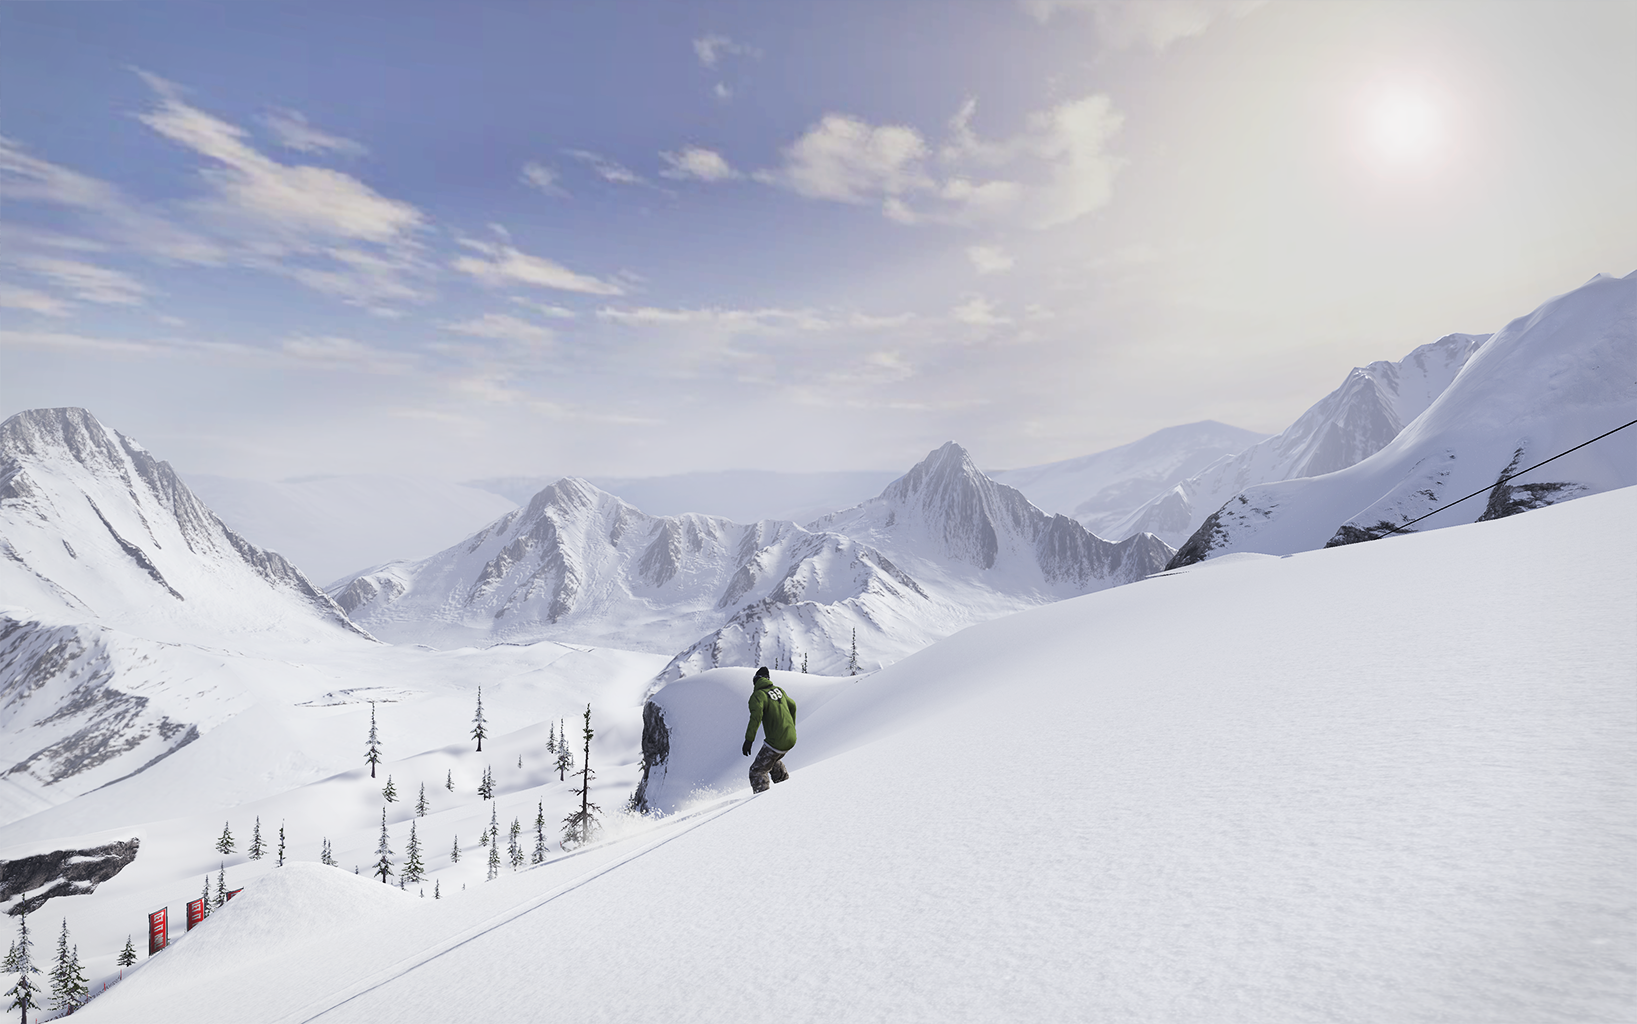 snowboard game screenshot 2015 03